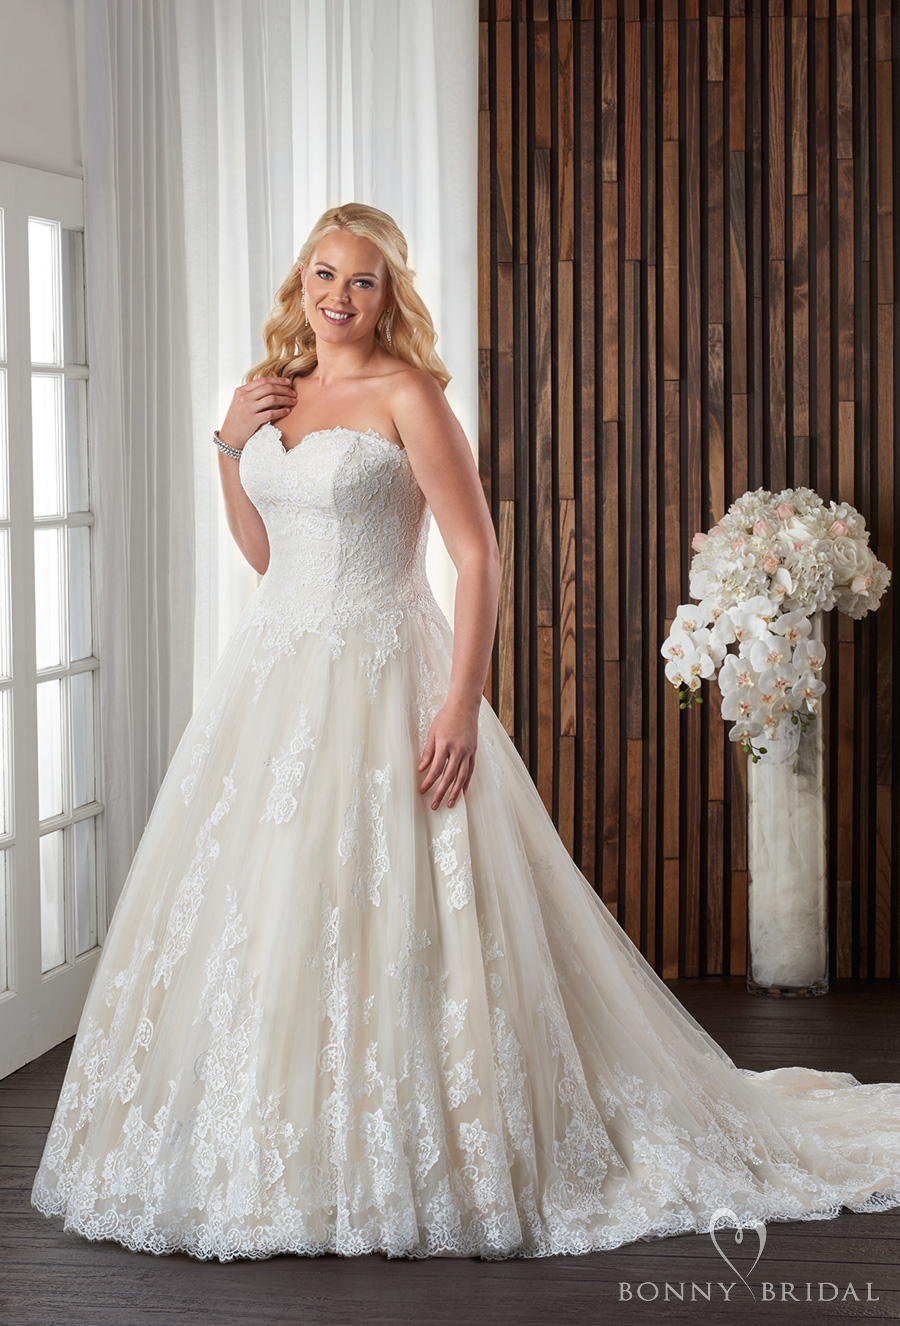 Soft Sweetheart Line Lace Tulle Wedding And Flare Neckline Fit And Dress Embellished